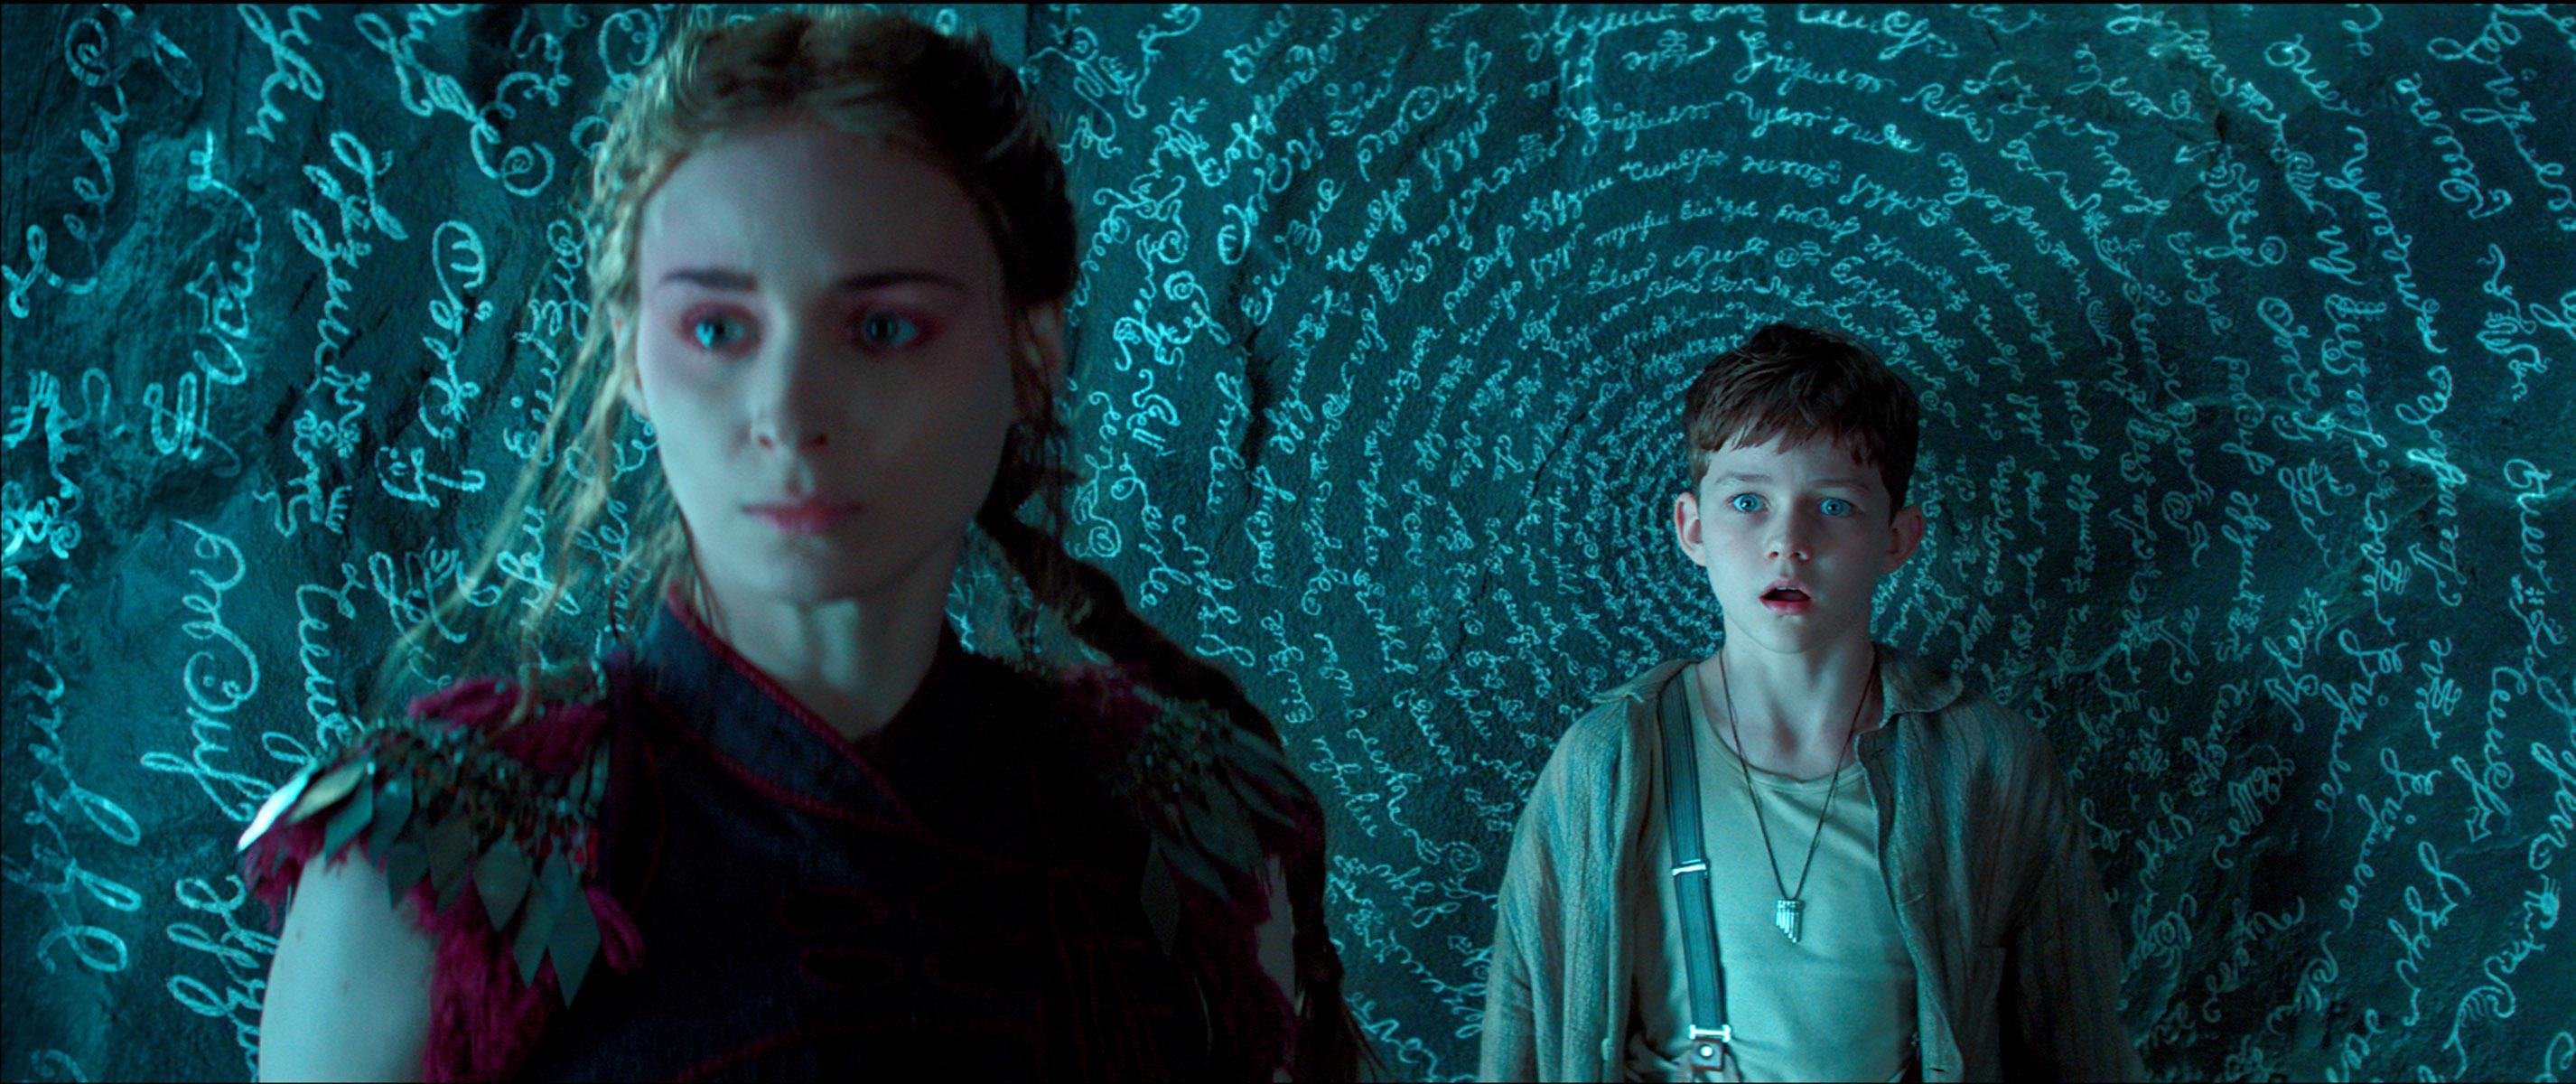 'Pan' lacks magic at the box office; 'The Martian' soars